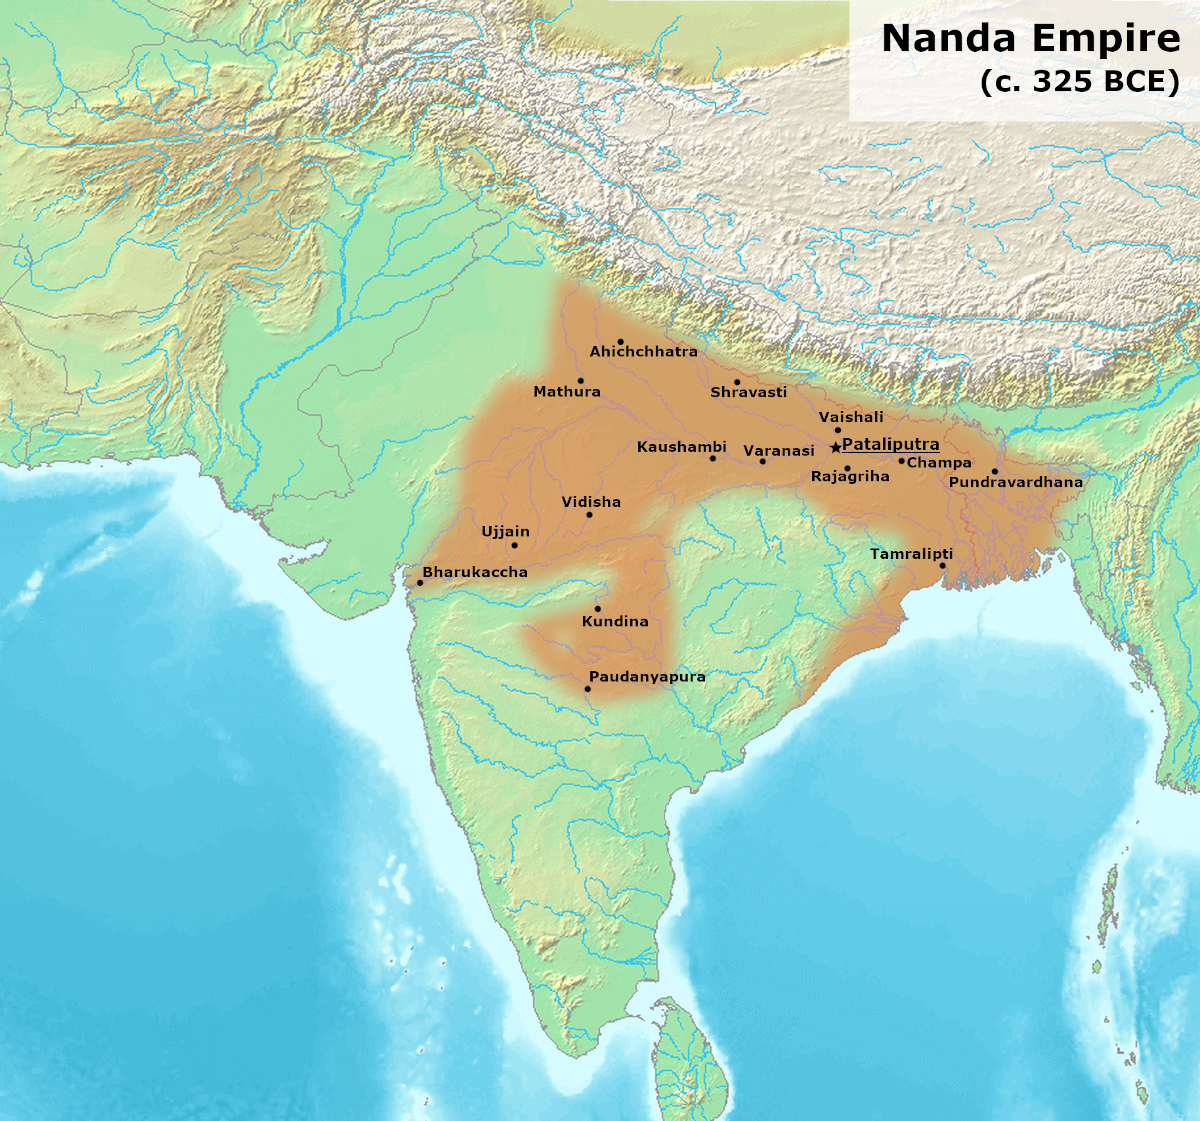 gupta empire map with File Nanda Empire  C 325 Bce on Watch in addition India Seven Wonders as well Galleries Chandragupta2 also The Sassanid Empire Strikes Back further Daily Life.